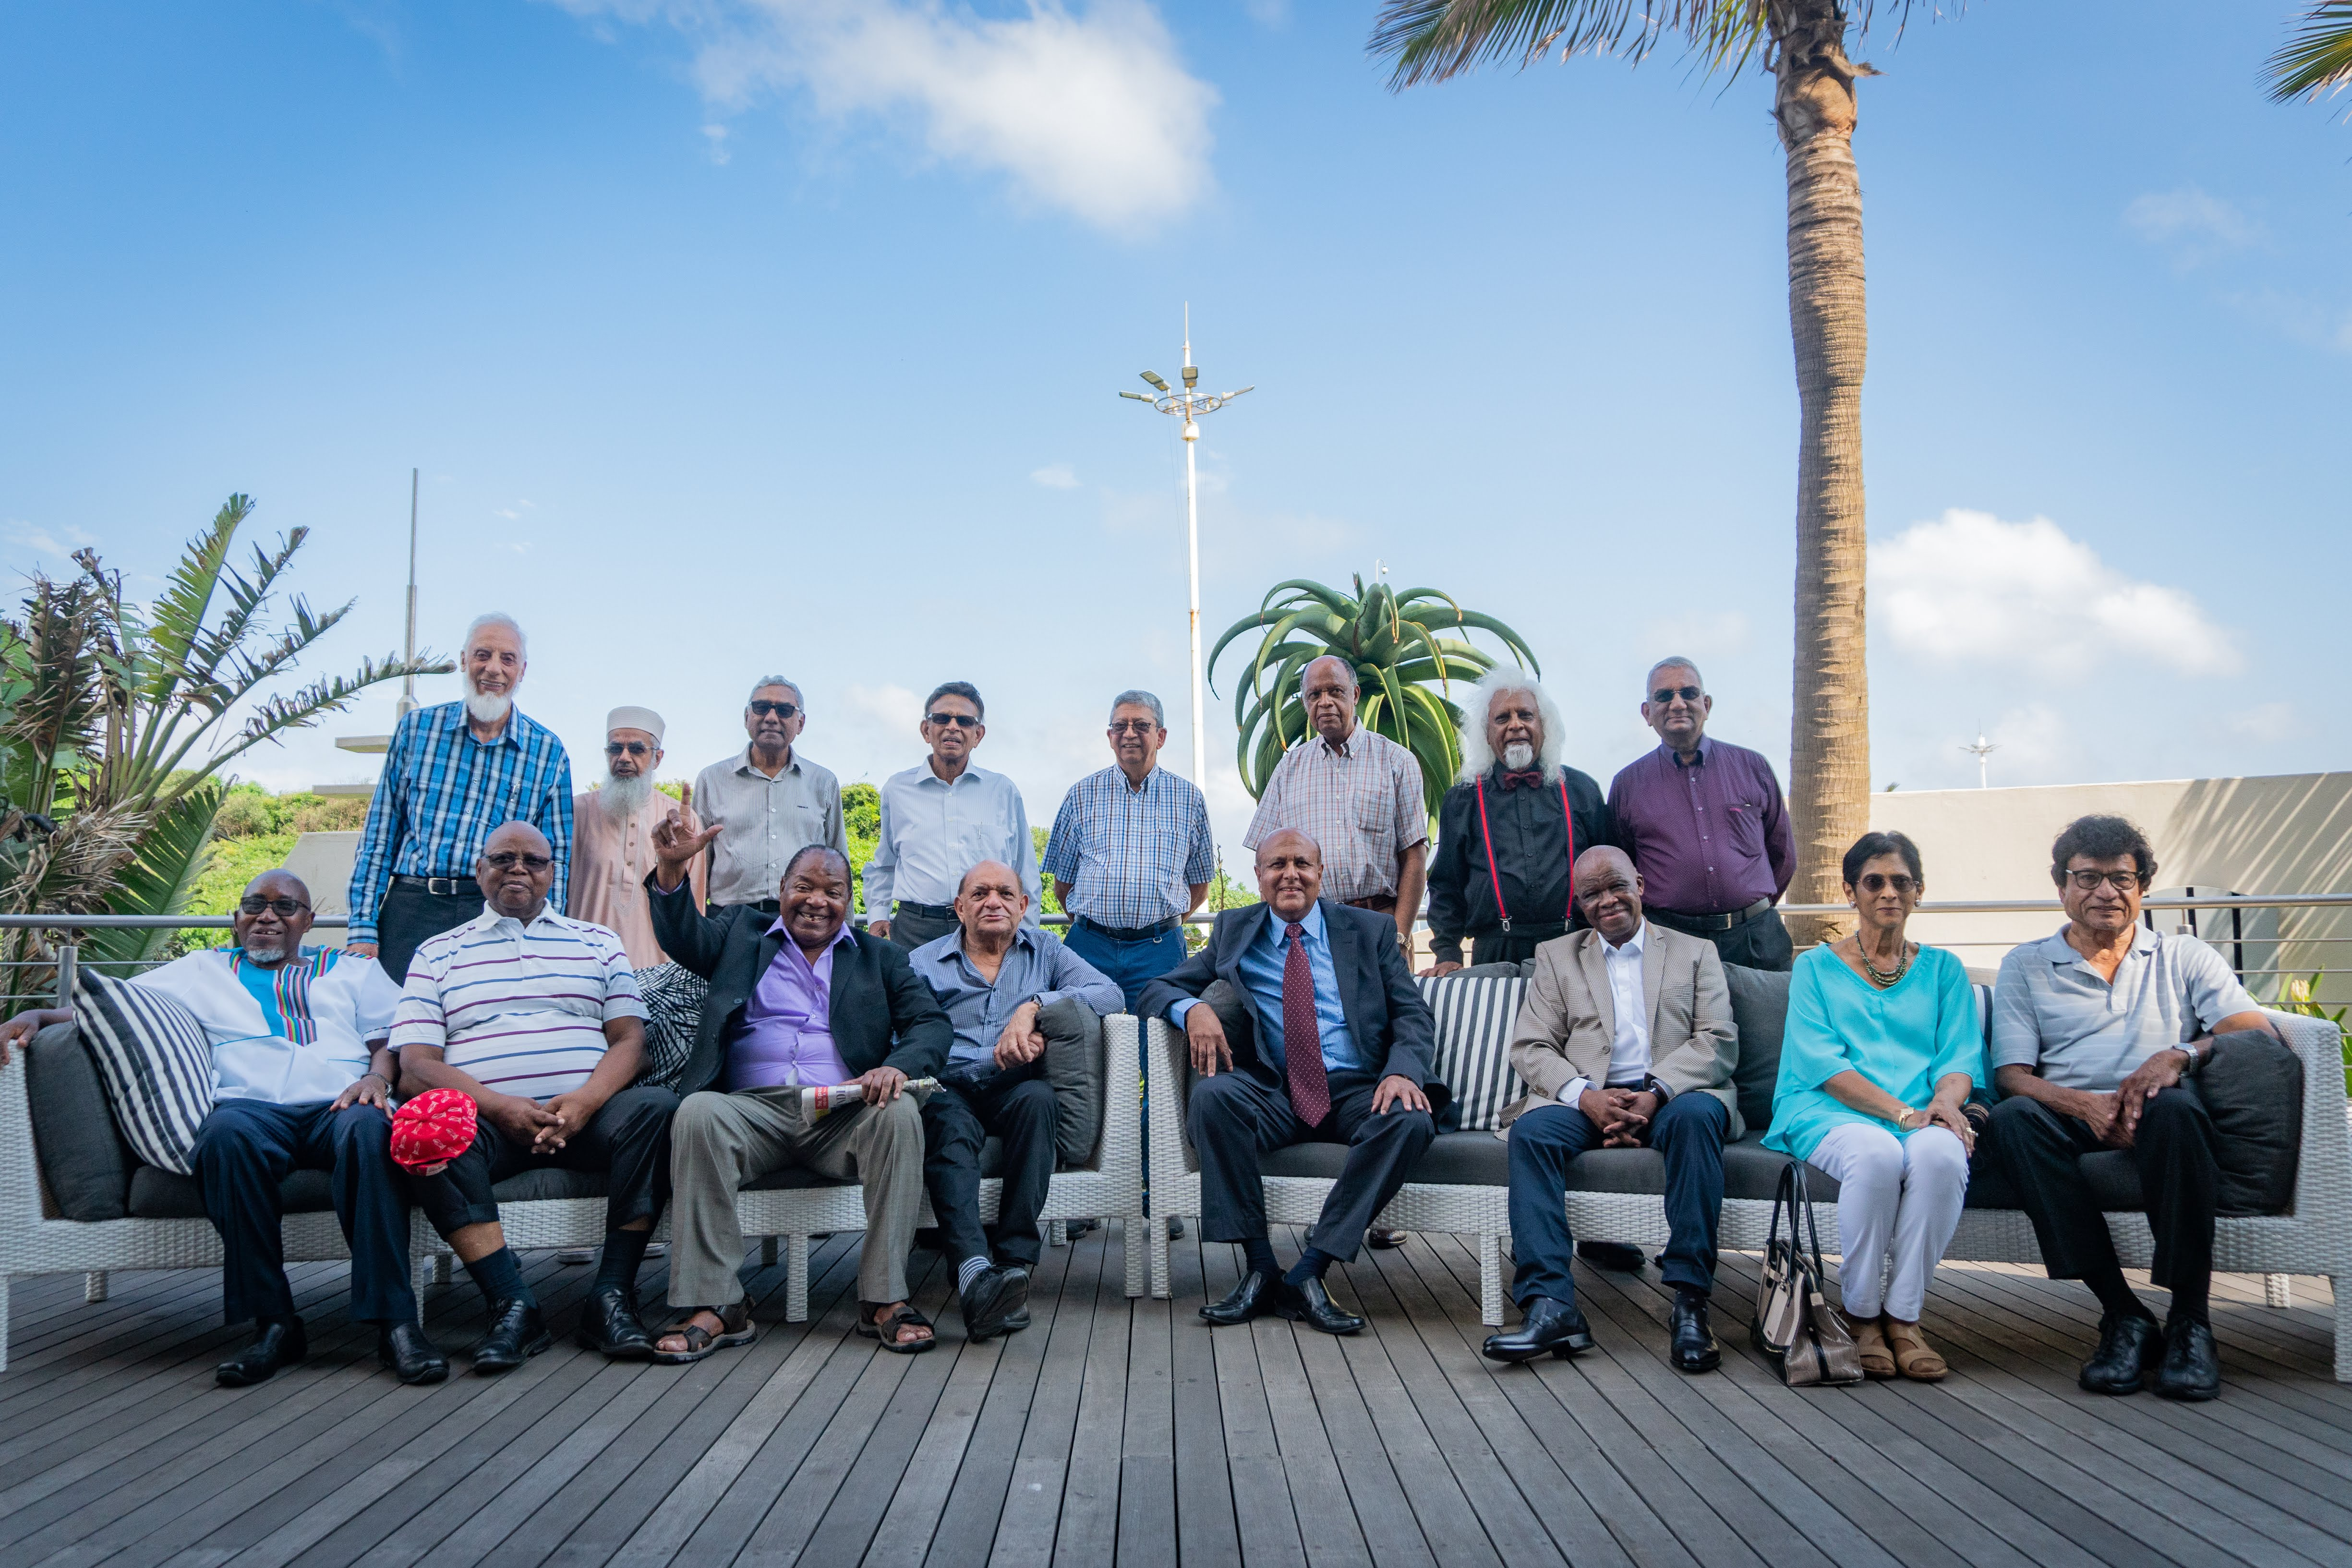 UKZN Medical School Class of '69 Holds 50-Year Reunion